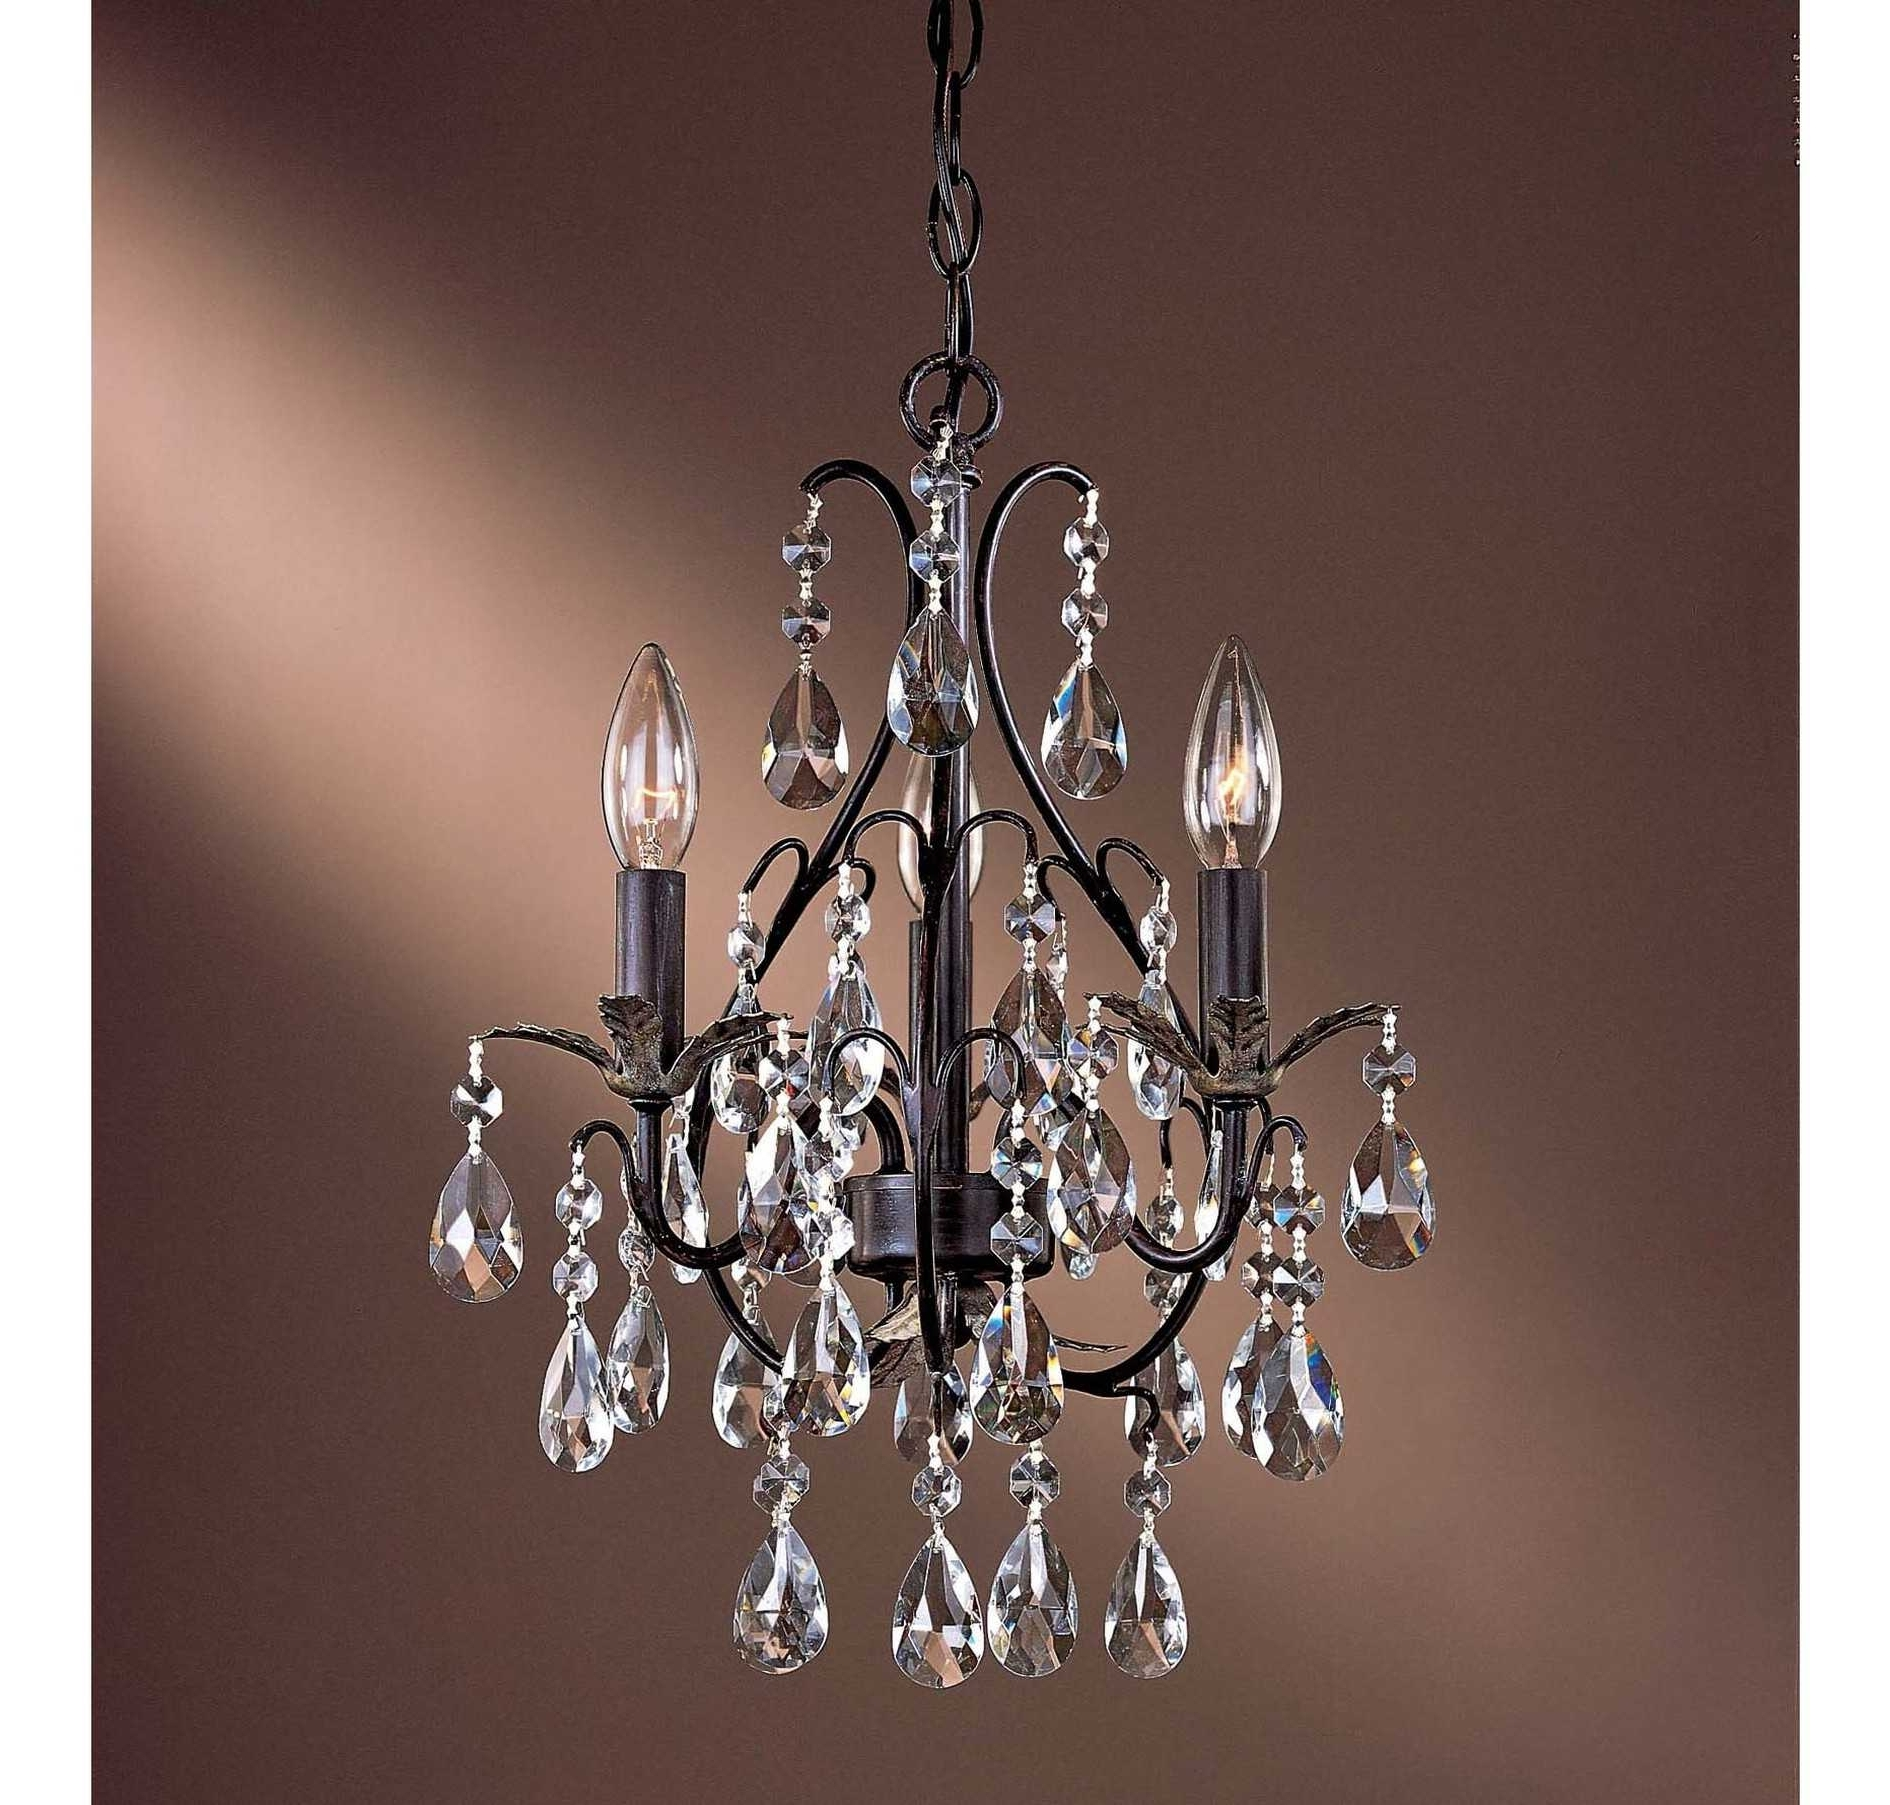 Stunning Mini Crystal Chandeliers For Bedrooms Trends With Small Intended For Favorite Mini Crystal Chandeliers (View 15 of 15)